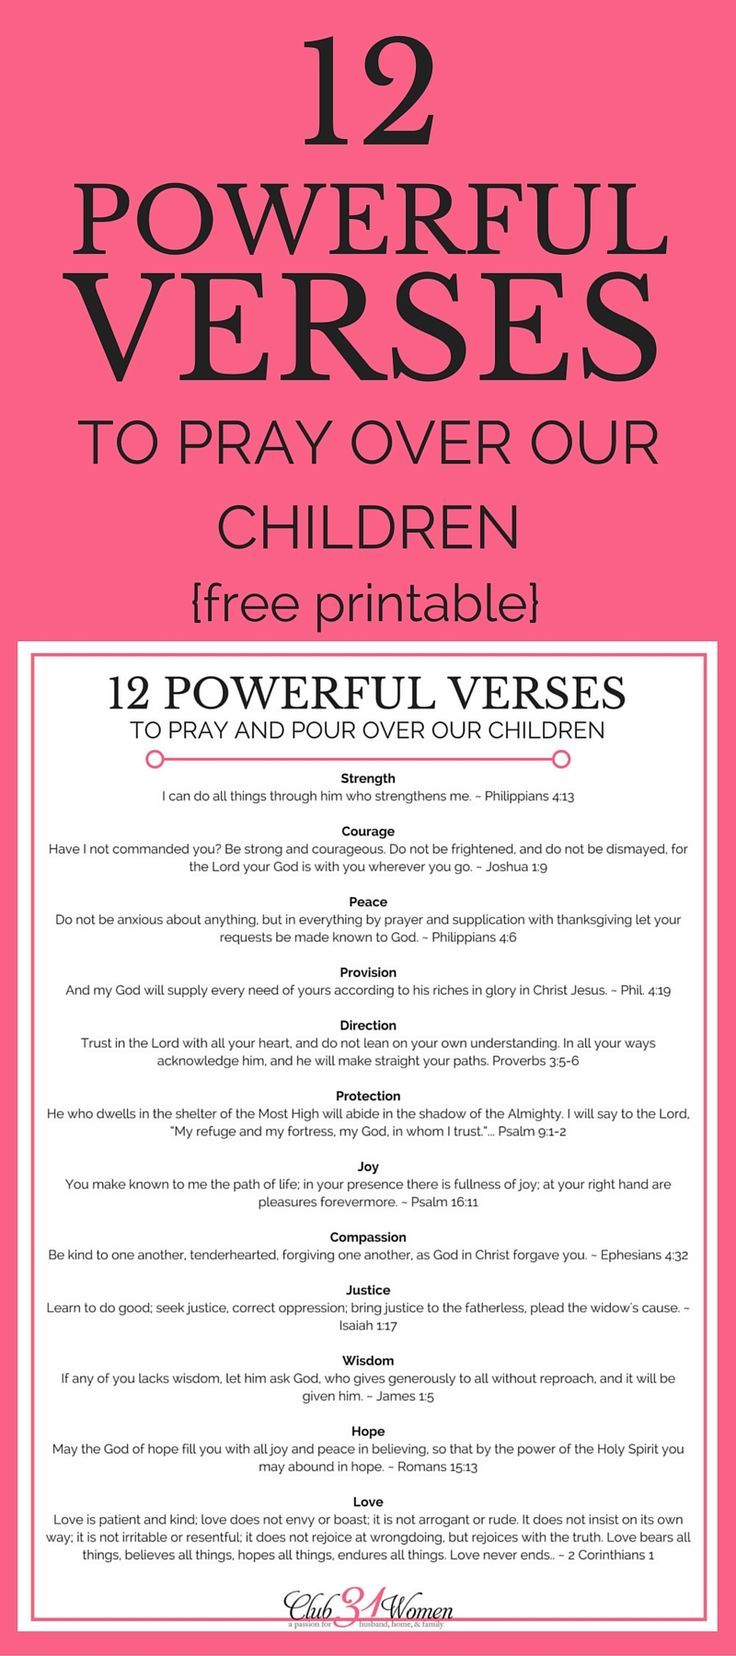 12 Powerful Verses to Pray Over Our Children with free printable